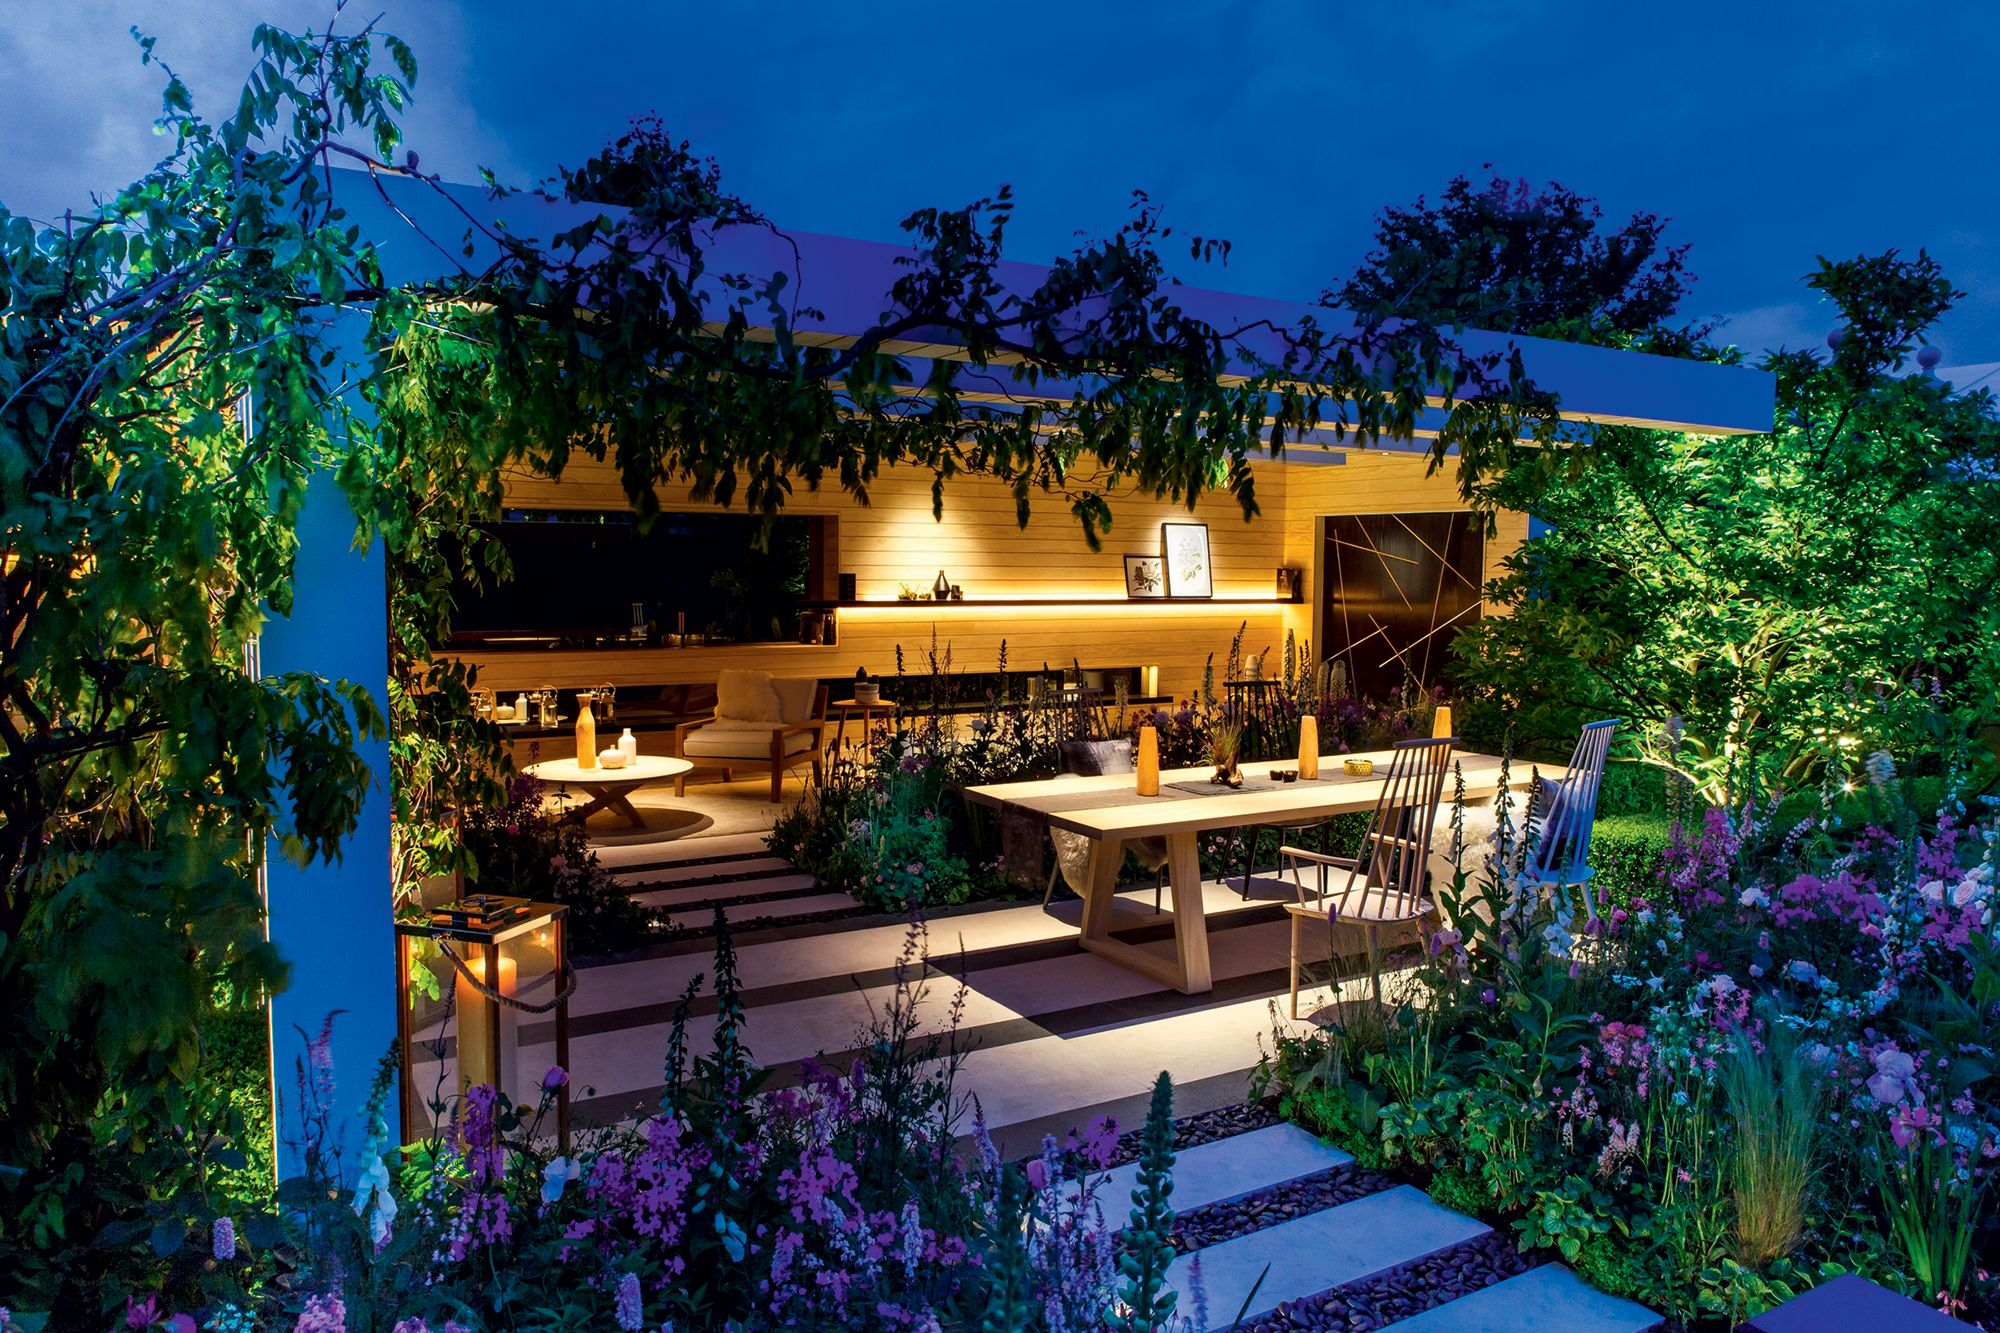 Beautiful lighting, planting and pergola with seating in